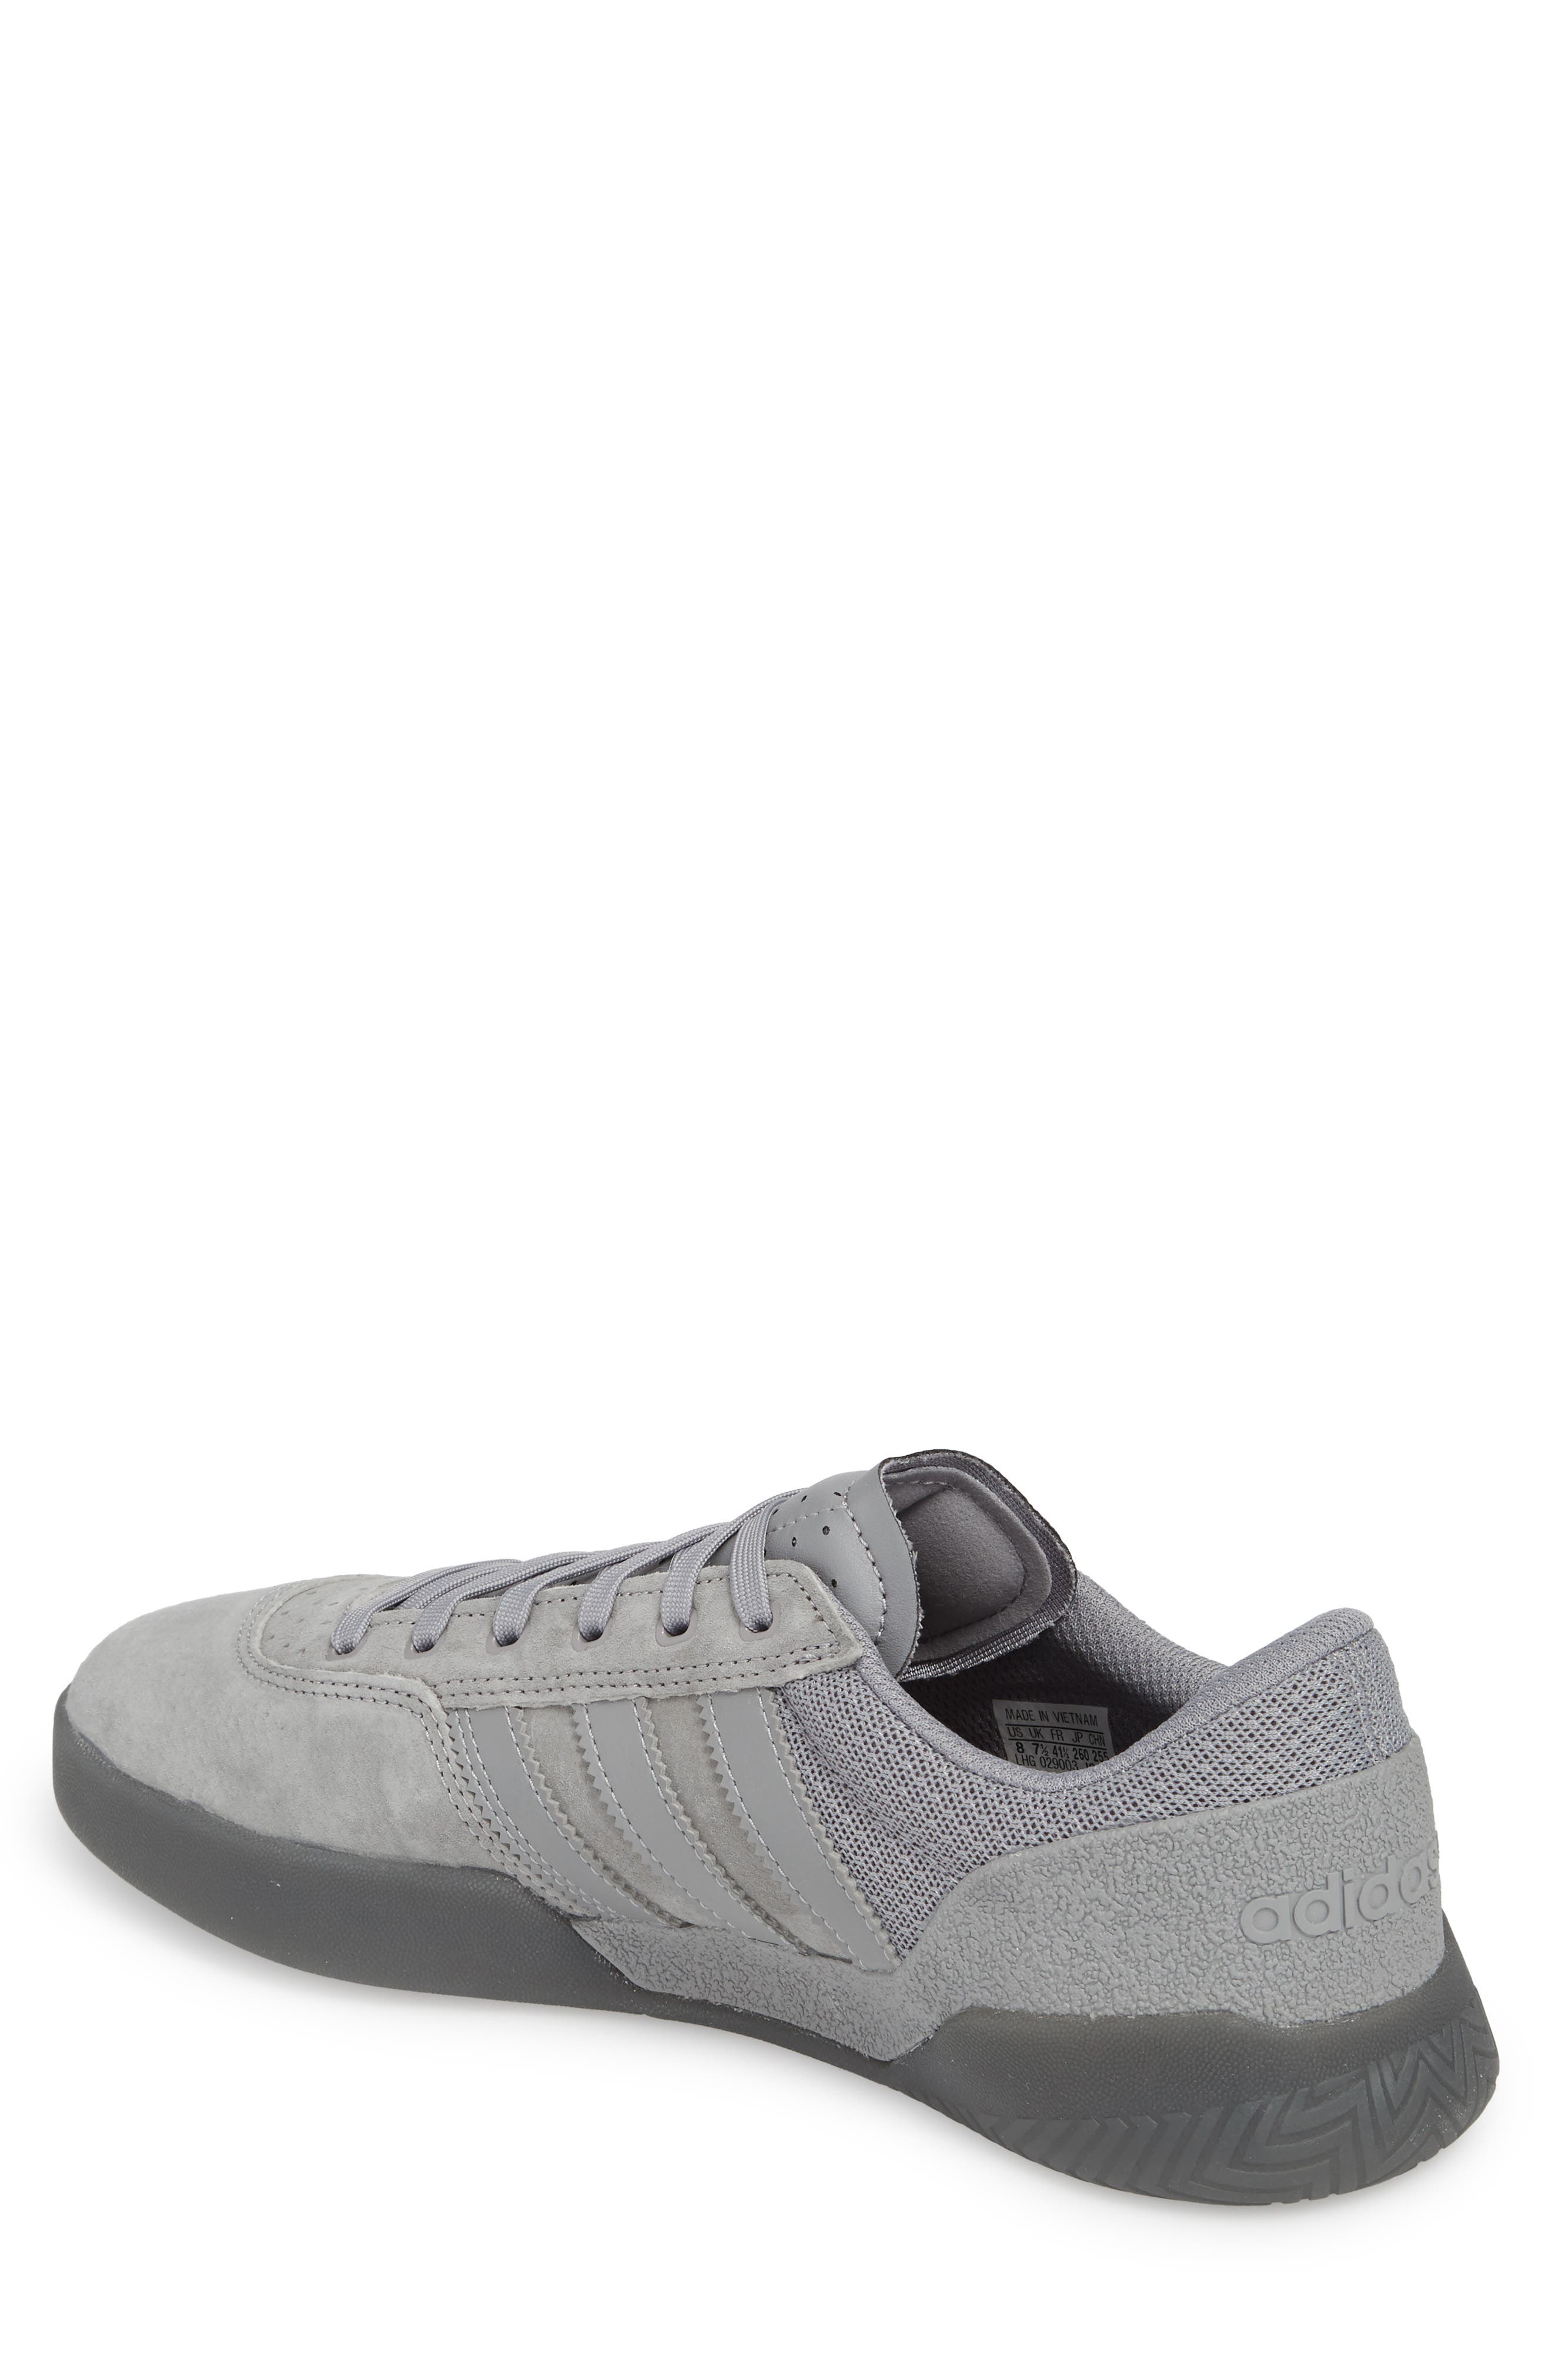 City Cup Sneaker,                             Alternate thumbnail 2, color,                             036